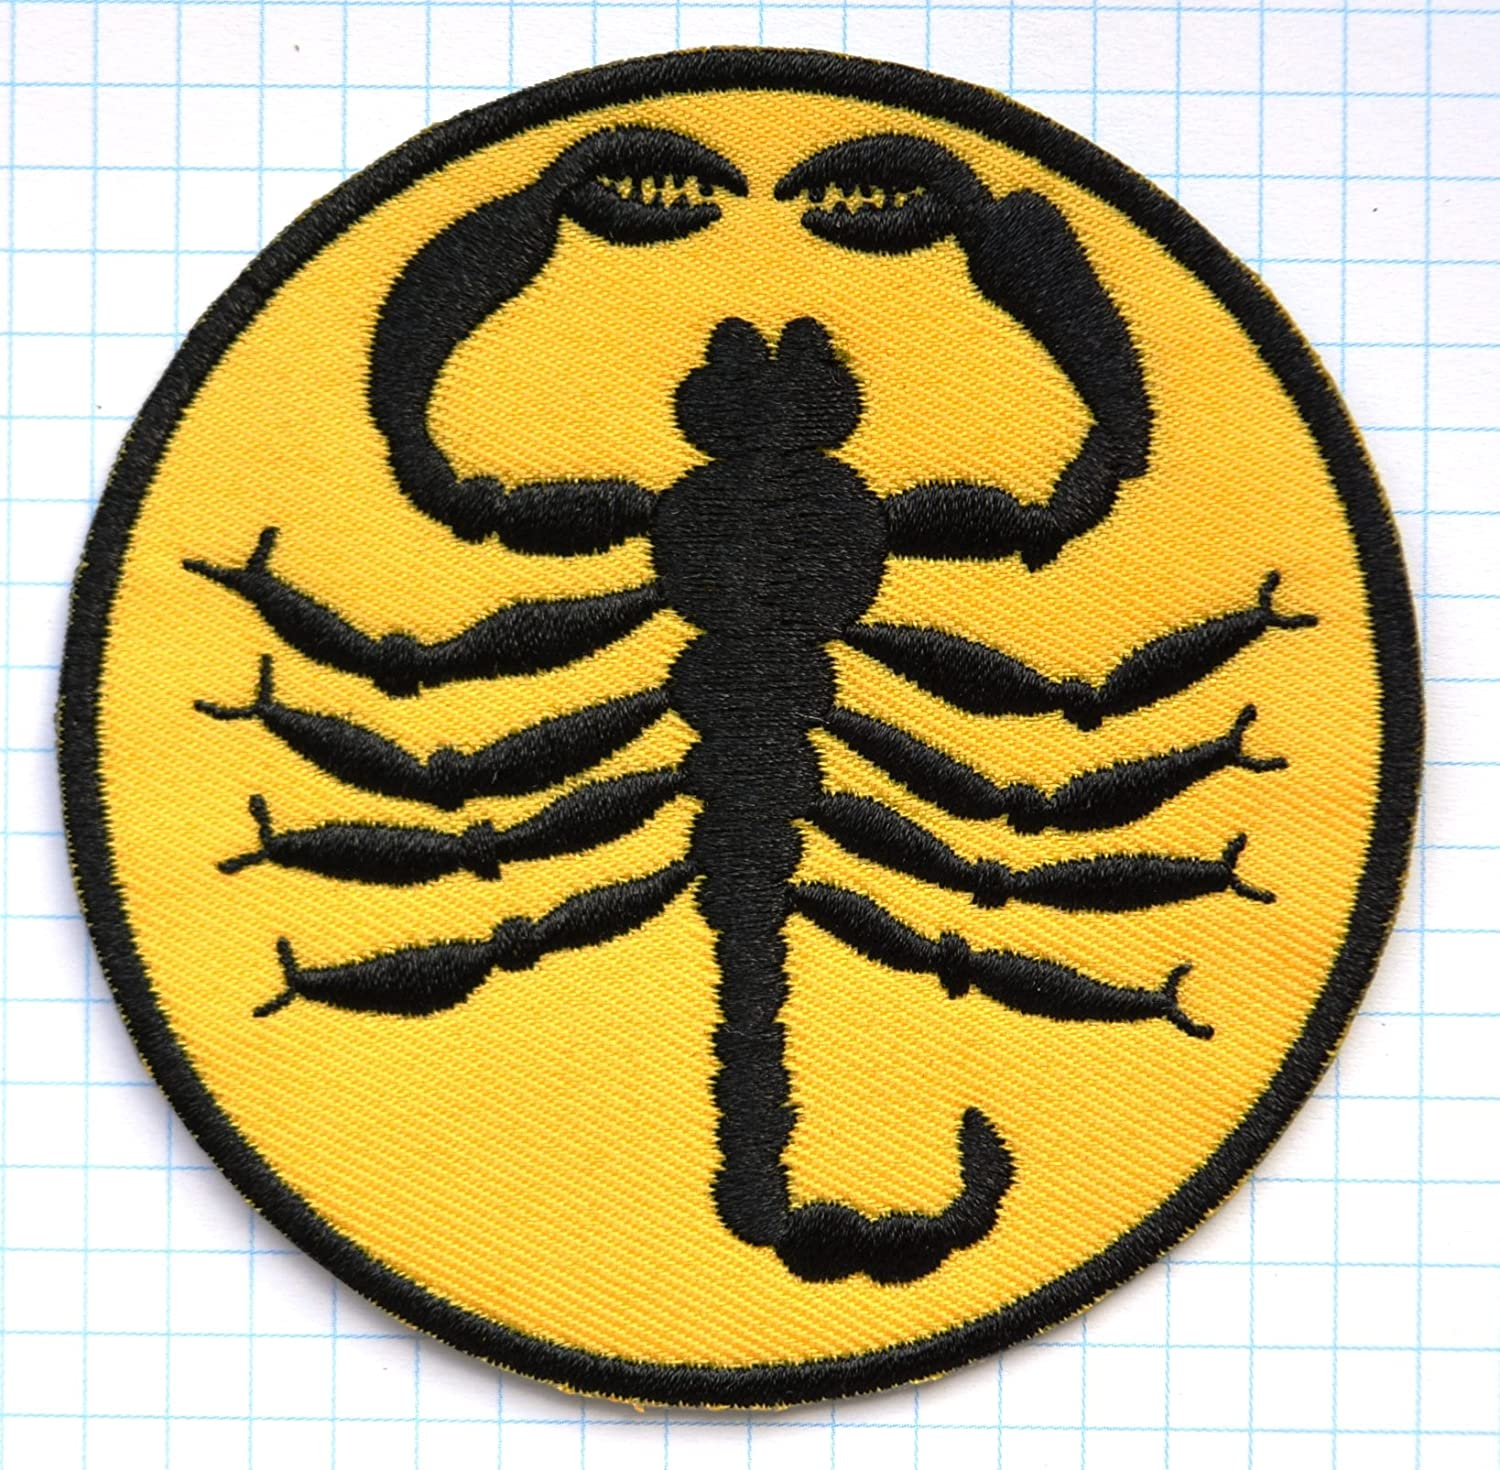 Scorpion Embroidered Cloth Iron On Patch